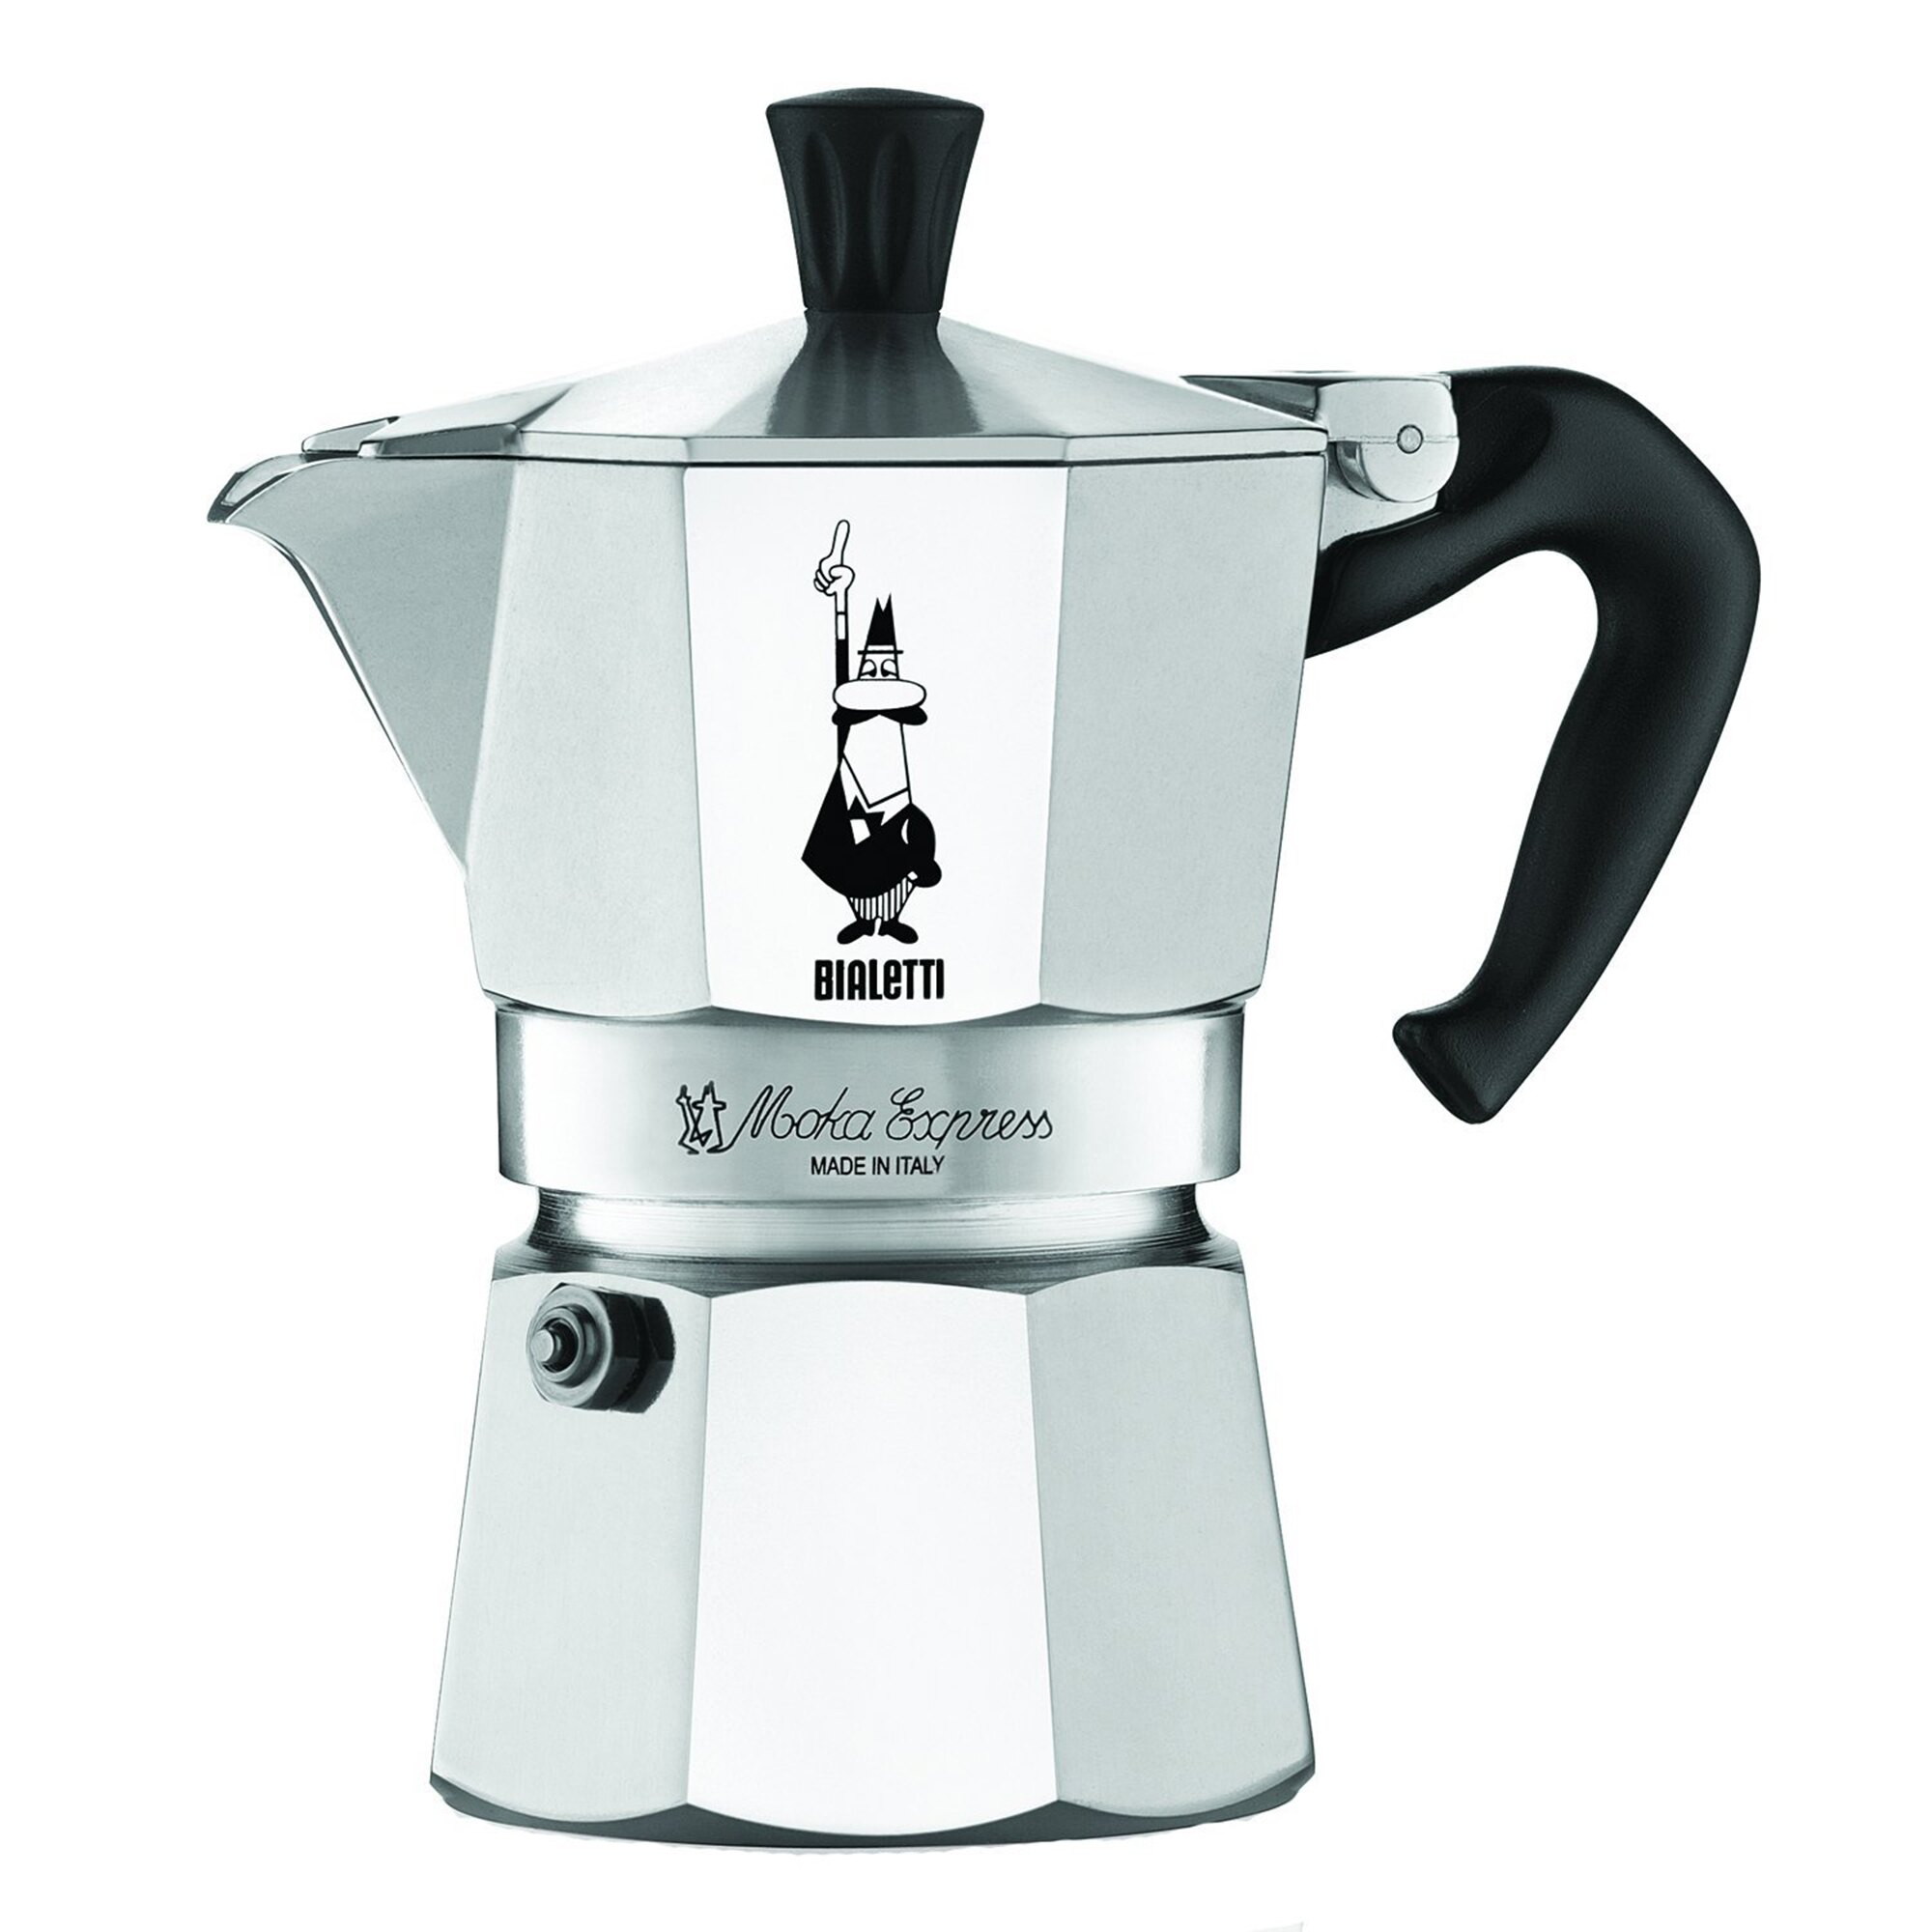 Bialetti Machine Cafe